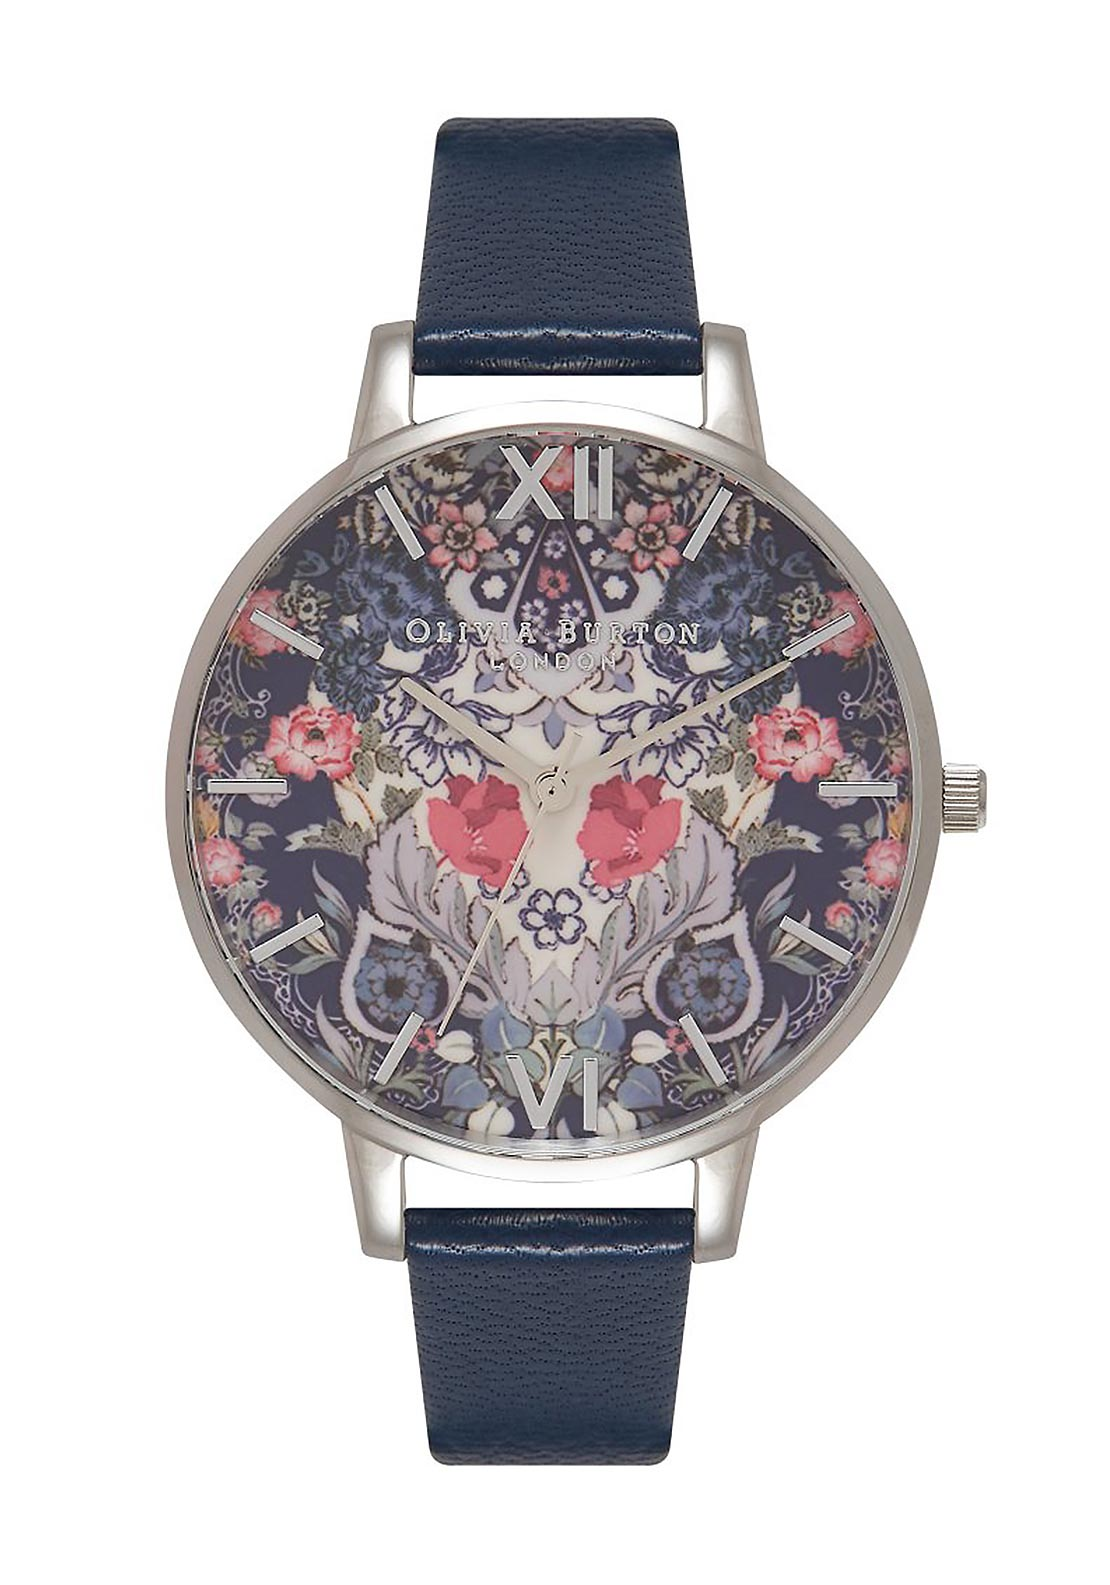 Olivia Burton Enchanted Garden Watch, Navy & Silver